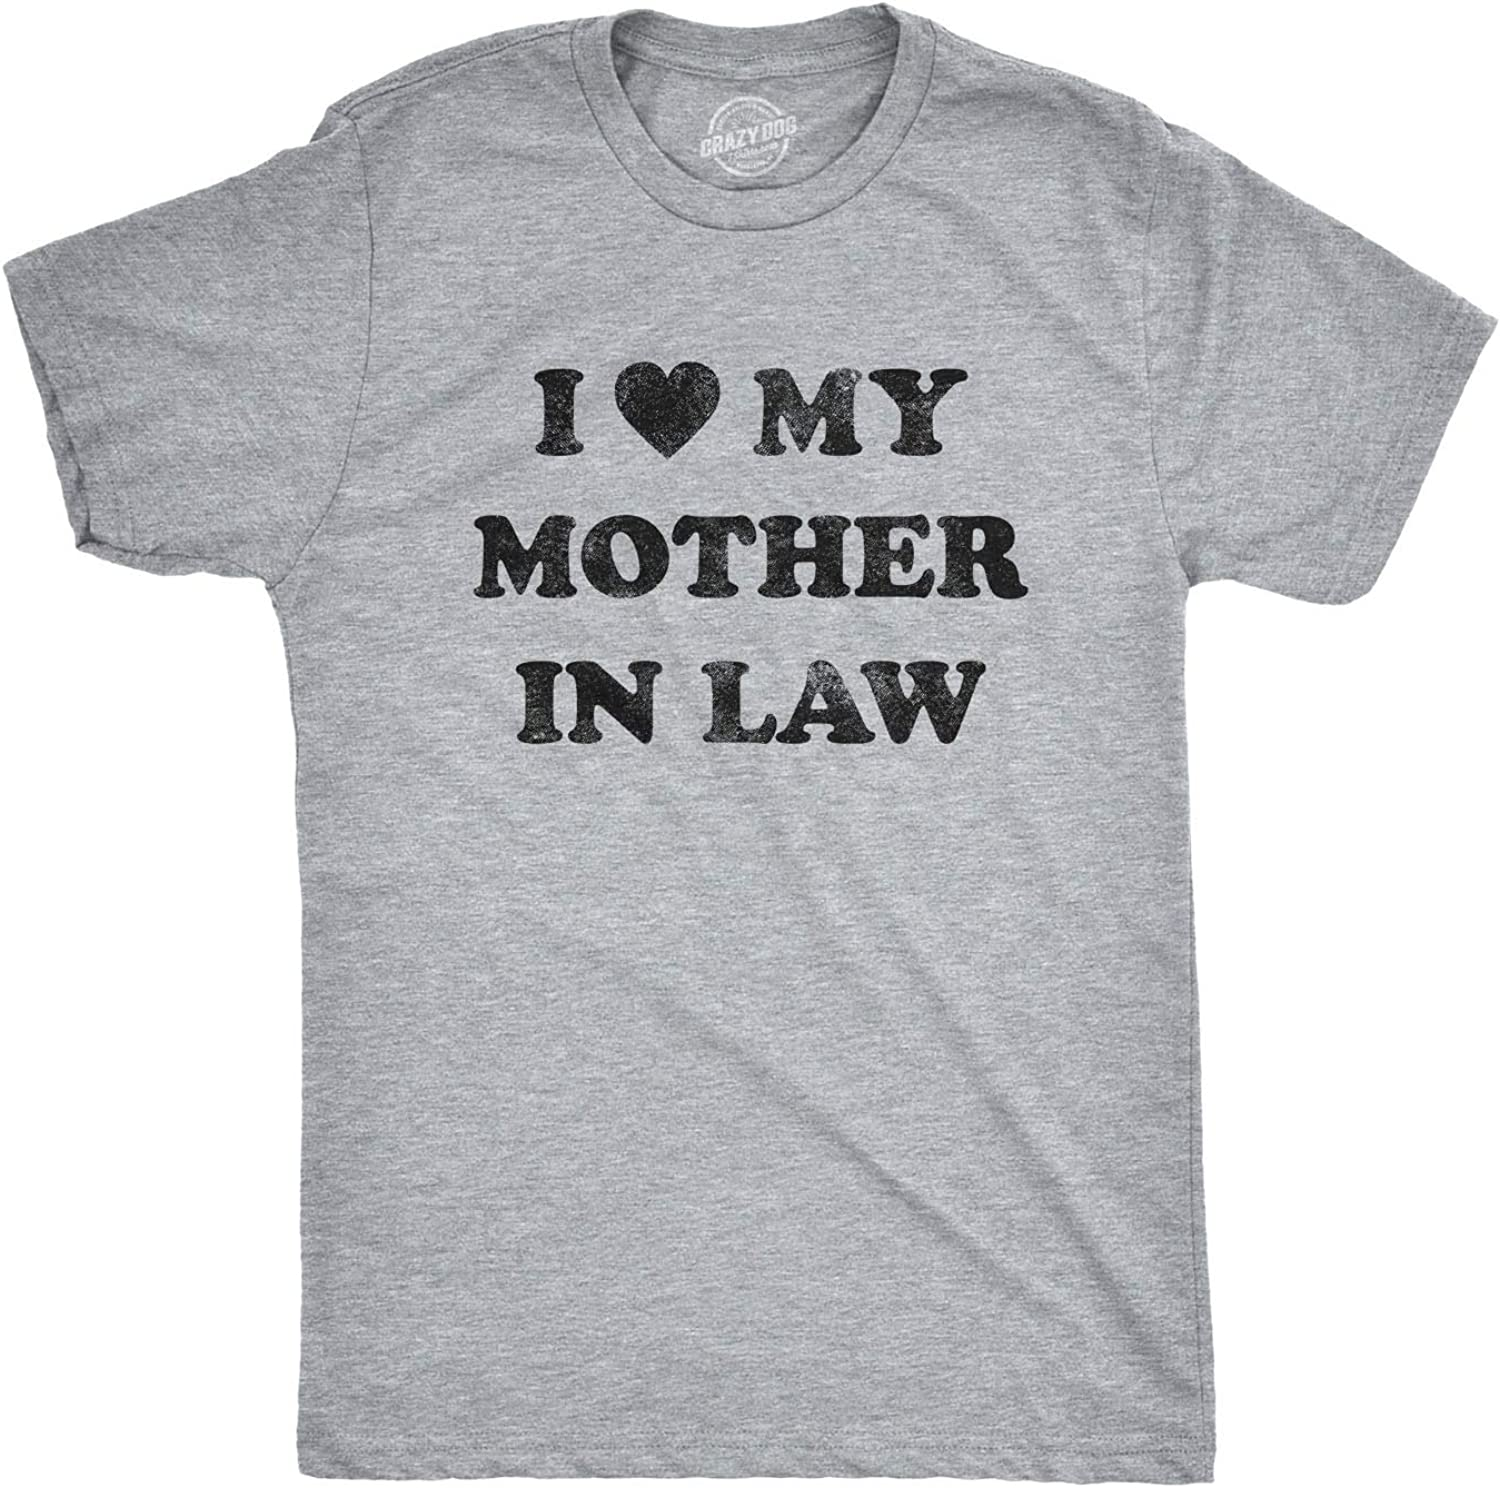 Mens I Love My Mother in Law Tshirt Funny Family Tee